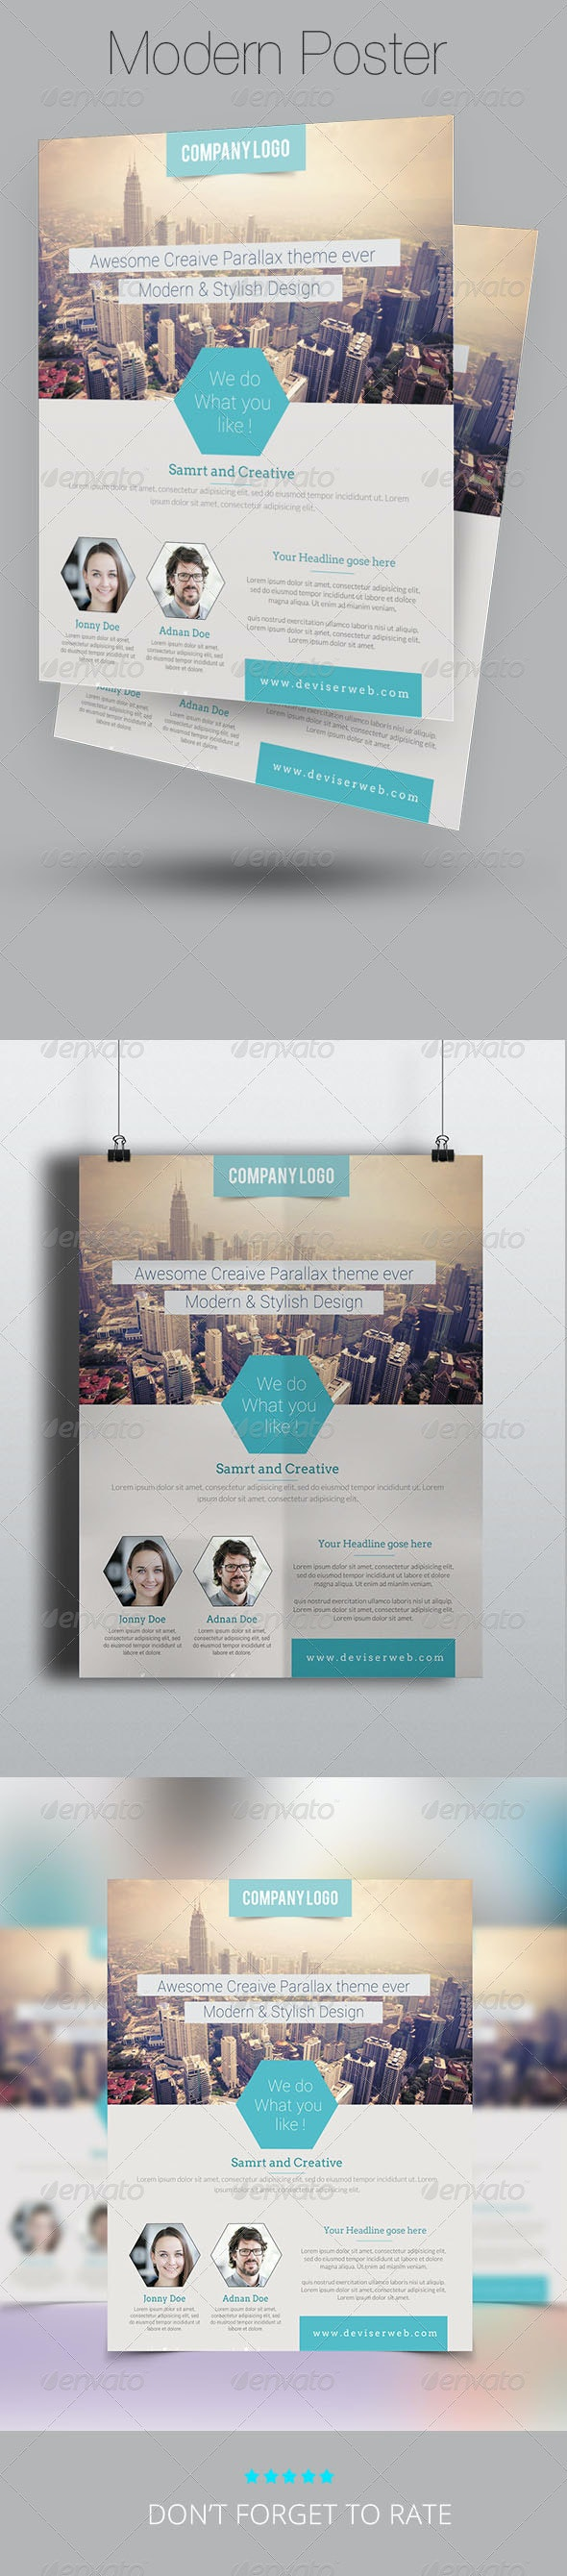 Modern Business Flyer/Poster Template - Corporate Flyers